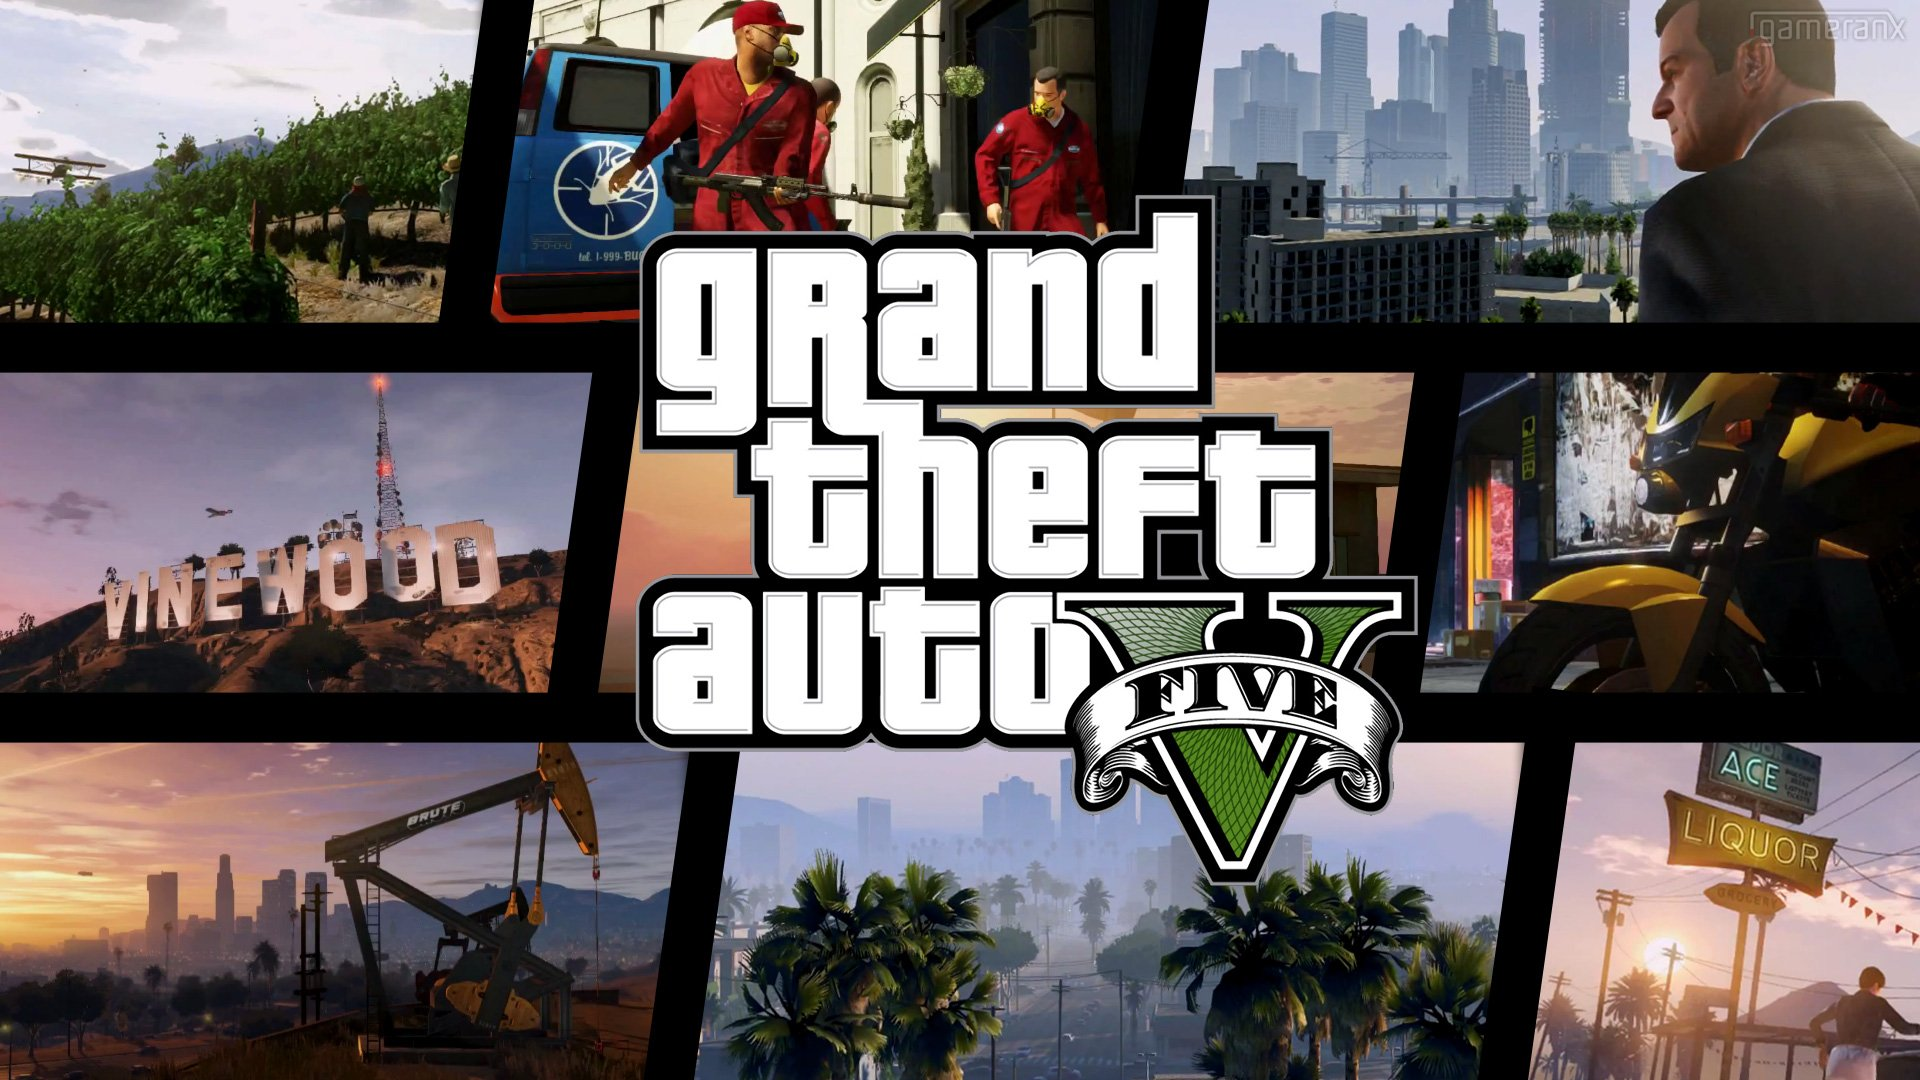 Latest Gta 5 Hd Desktop Wallpapers 1920x1080